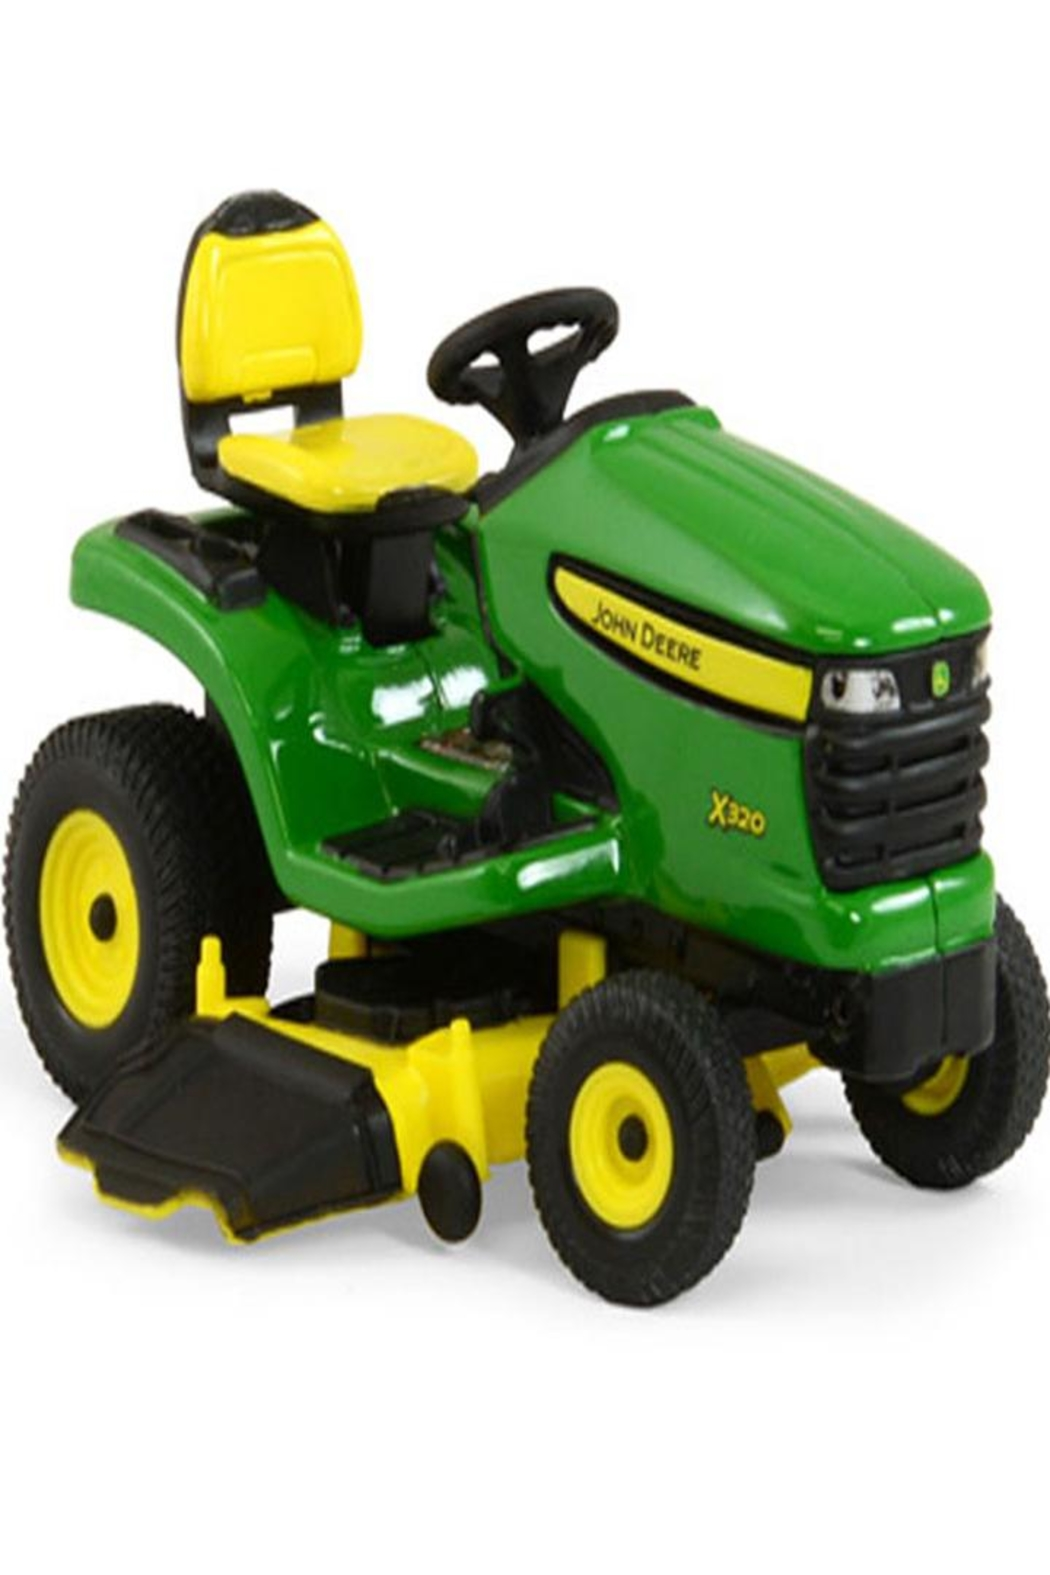 ERTL X320 Lawn Tractor Toy - Front Full Image